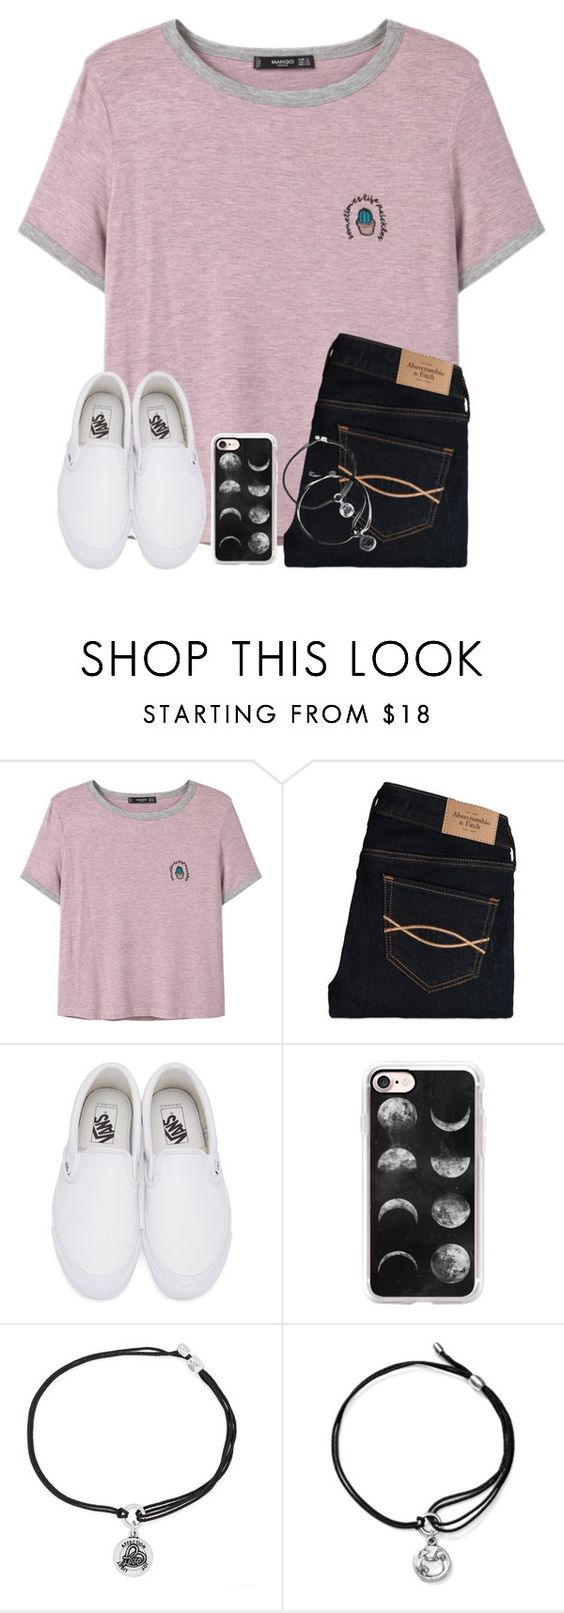 """""""One Of My Plain Tee+Jeans+Converse Sets Has 6,000+ Views😂😂"""" by twaayy ❤ liked on Polyvore featuring MANGO, Abercrombie & Fitch, Vans, Casetify and Alex and Ani"""